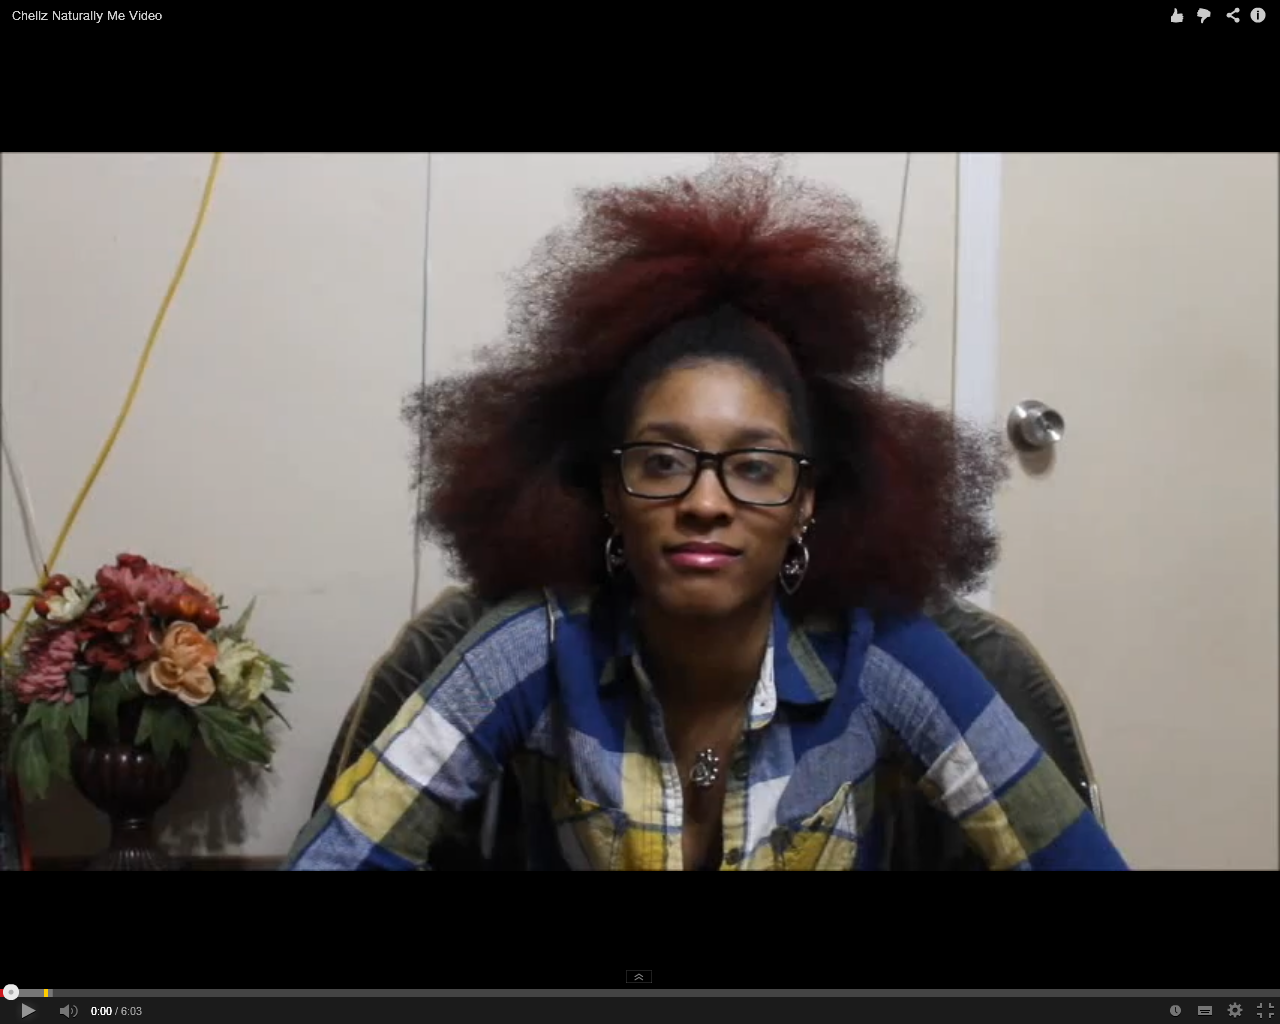 Chellz Naturally Me Going Natural Video Diary